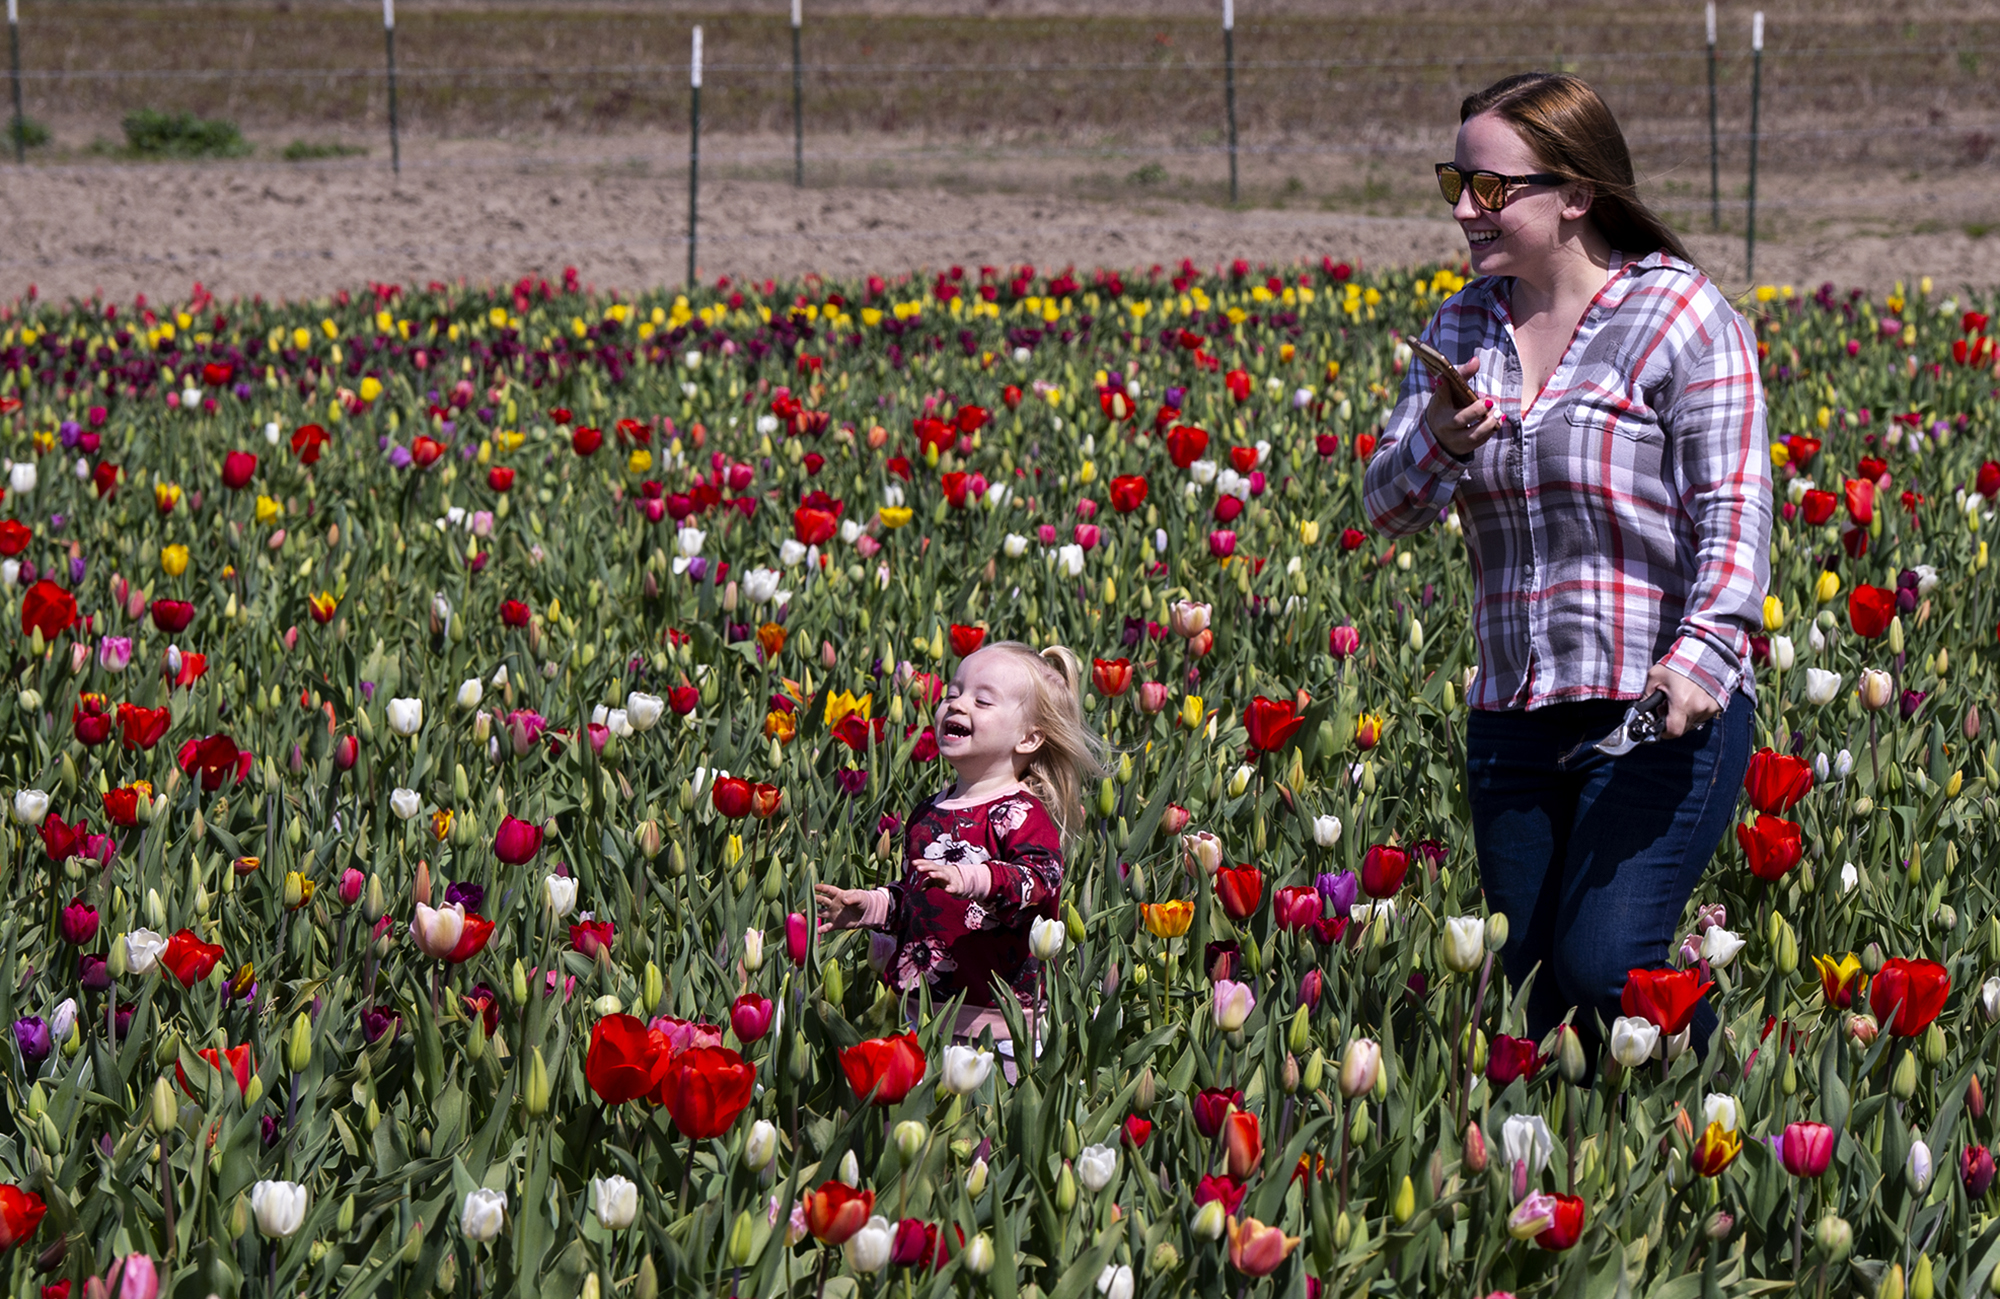 McKenzie Grauer, 2, runs through rows of tulips while her mother, Brandie Grauer follows her on Tuesday, April 6, 2021, at the Holland America Flower Gardens in Woodland. Dozens of people, including families, cyclists and Clark County residents roamed the grounds throughout the day. The Gardens include a show field, where tulips are observed and untouched, and a u-pick field where guests cut their own flowers for 50 cents each. The Gardens opened March 29 and run through Mother's Day on May 9.